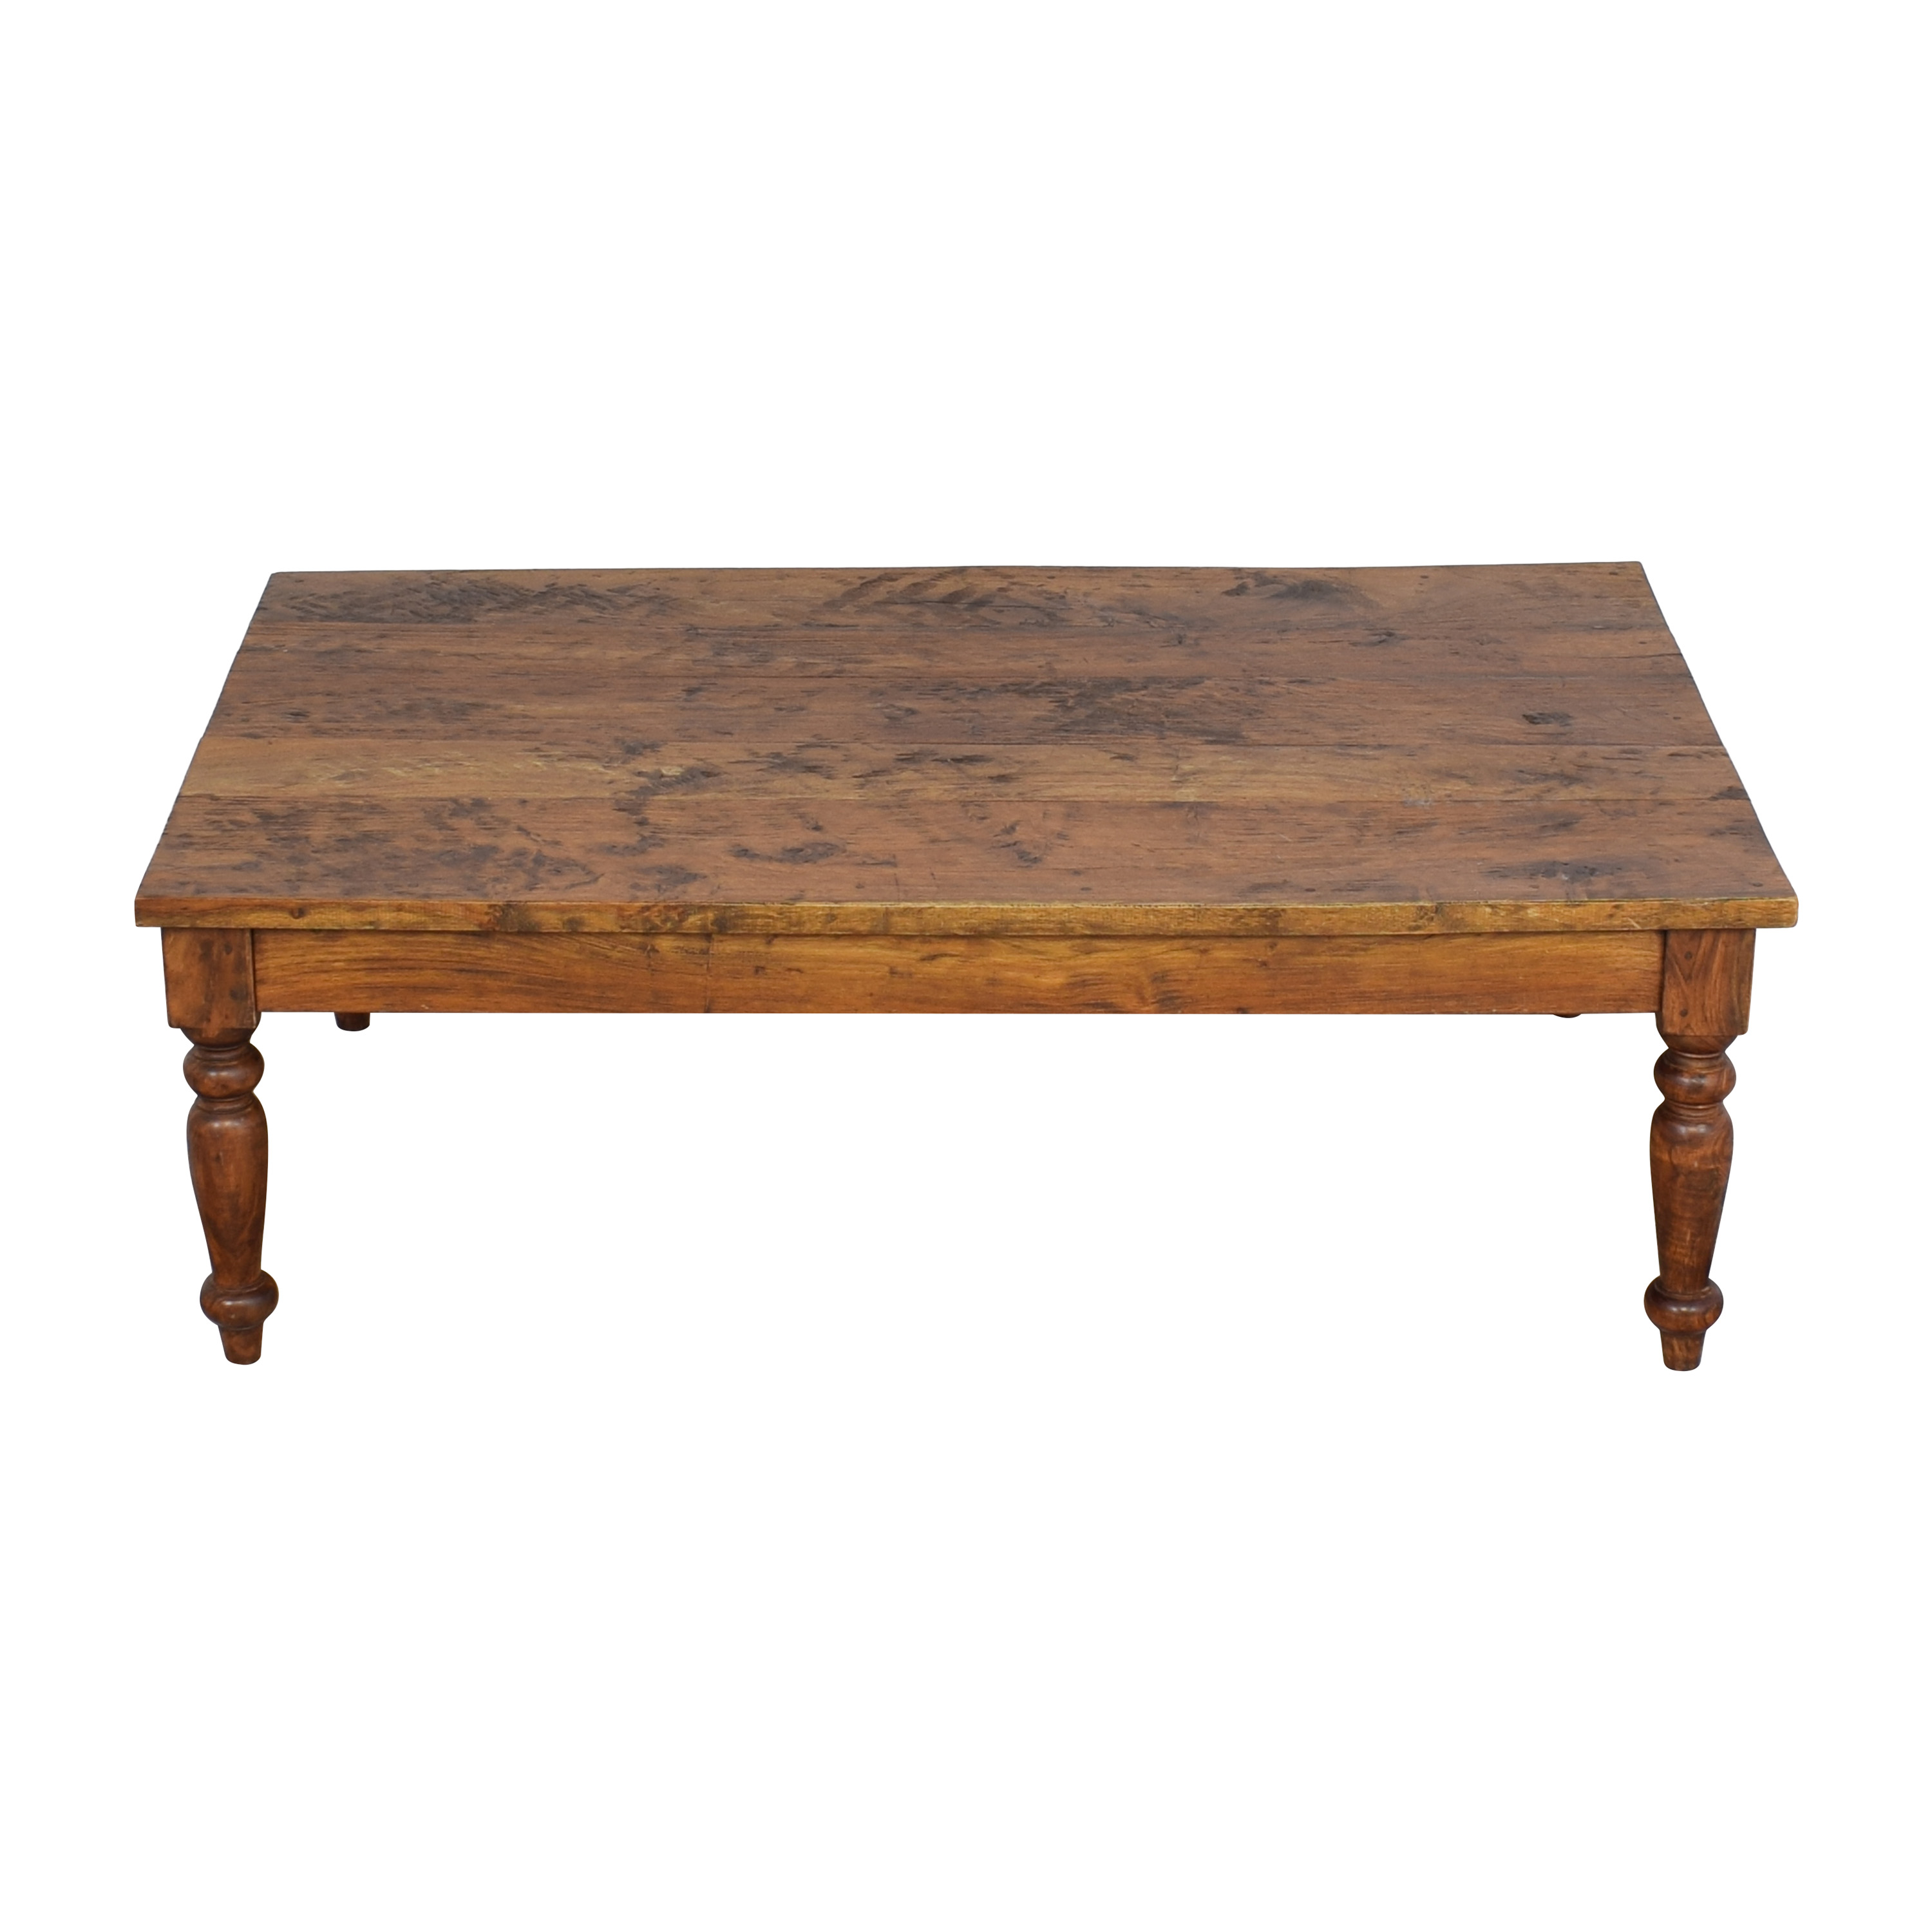 Crate & Barrel Crate & Barrel Weathered Coffee Table coupon